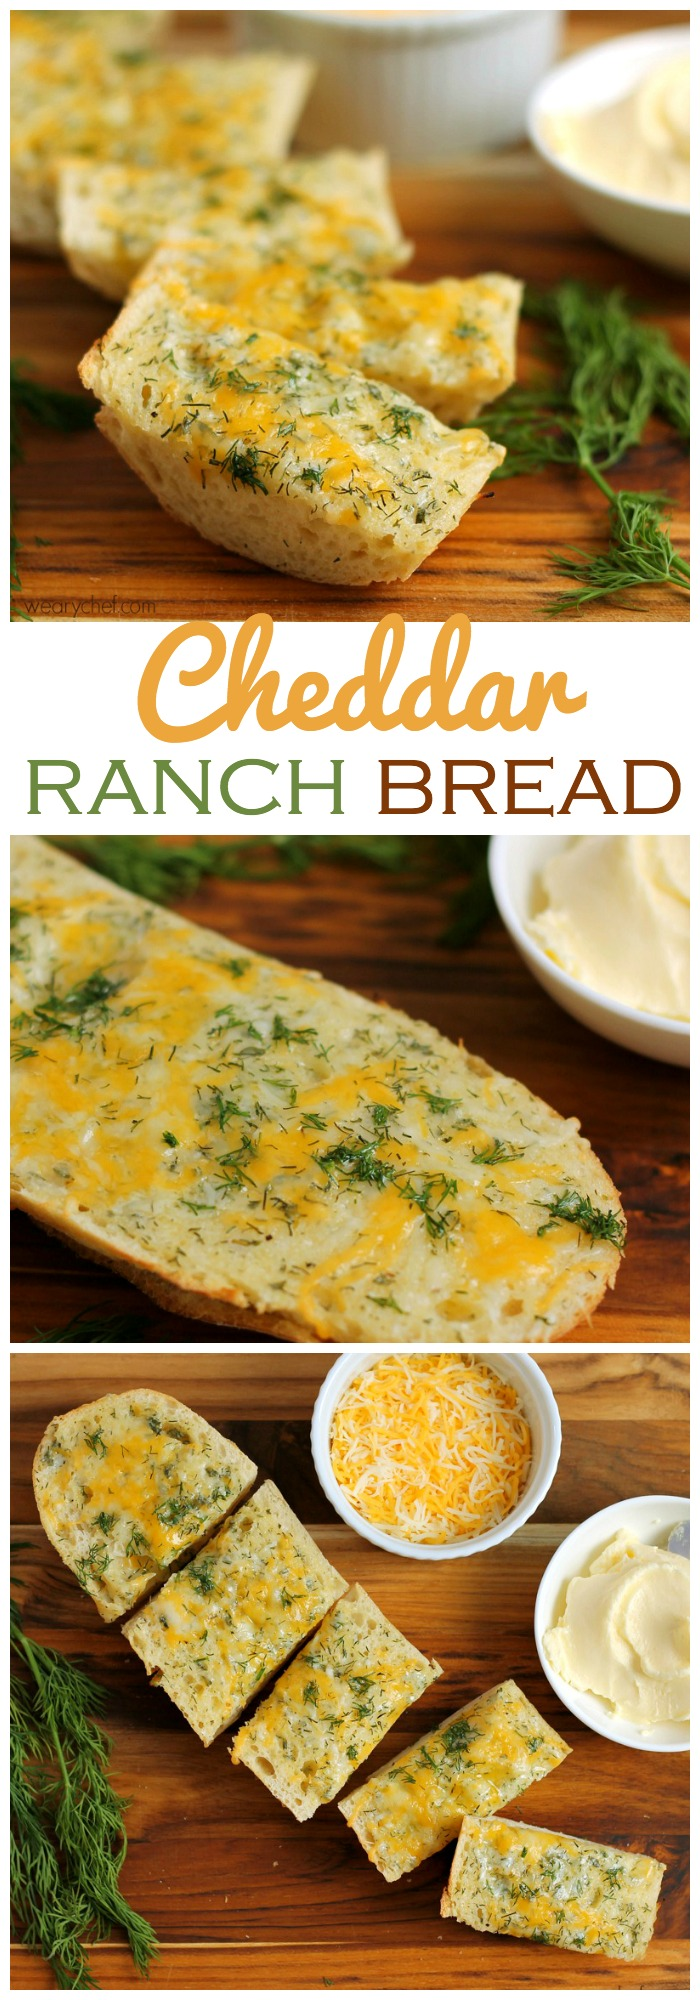 This tangy, cheesy bread is lighter than your typical garlic bread recipe!